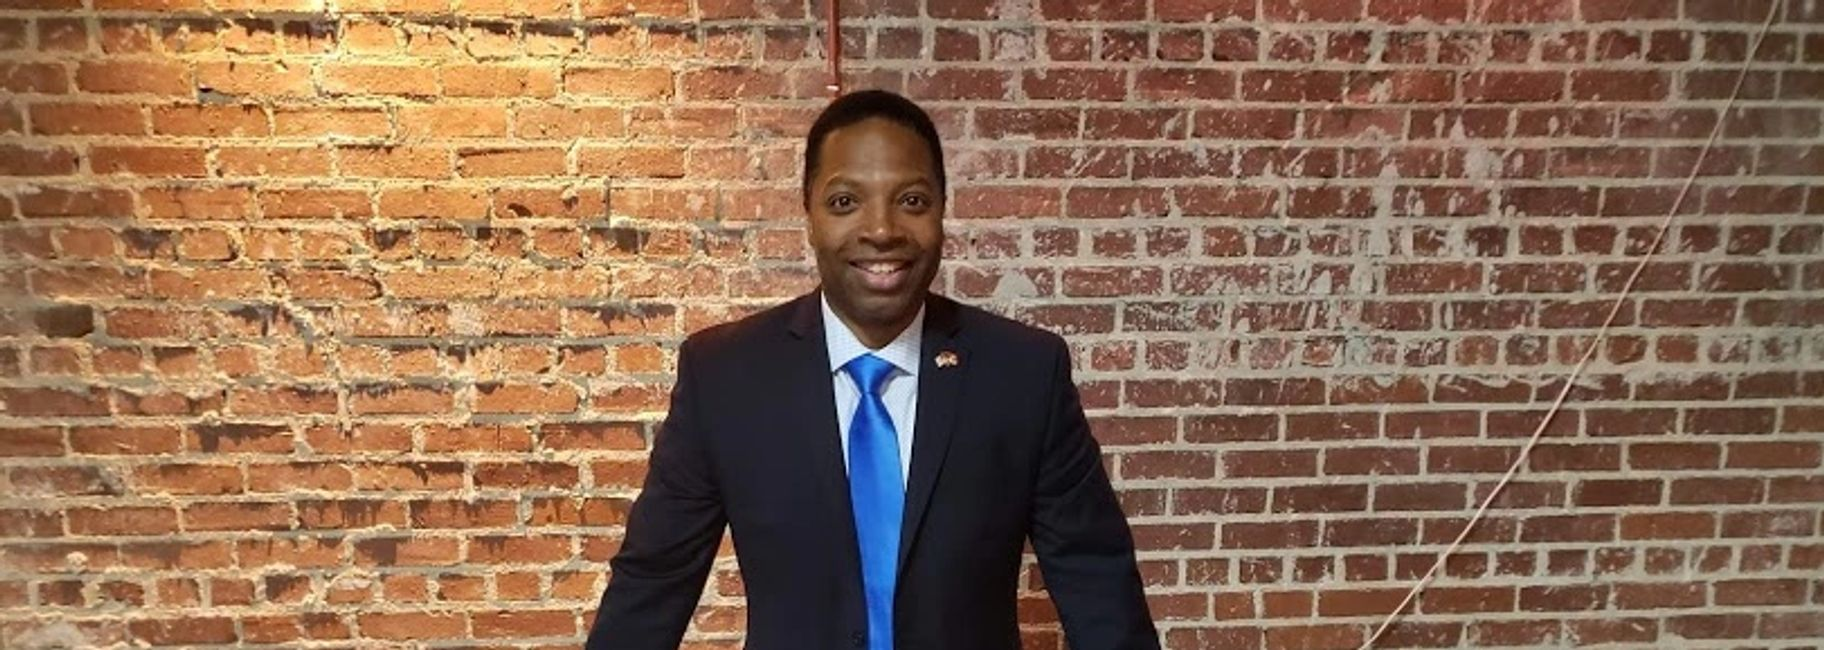 Michael Owens for Congress.  Georgia, David Scott.